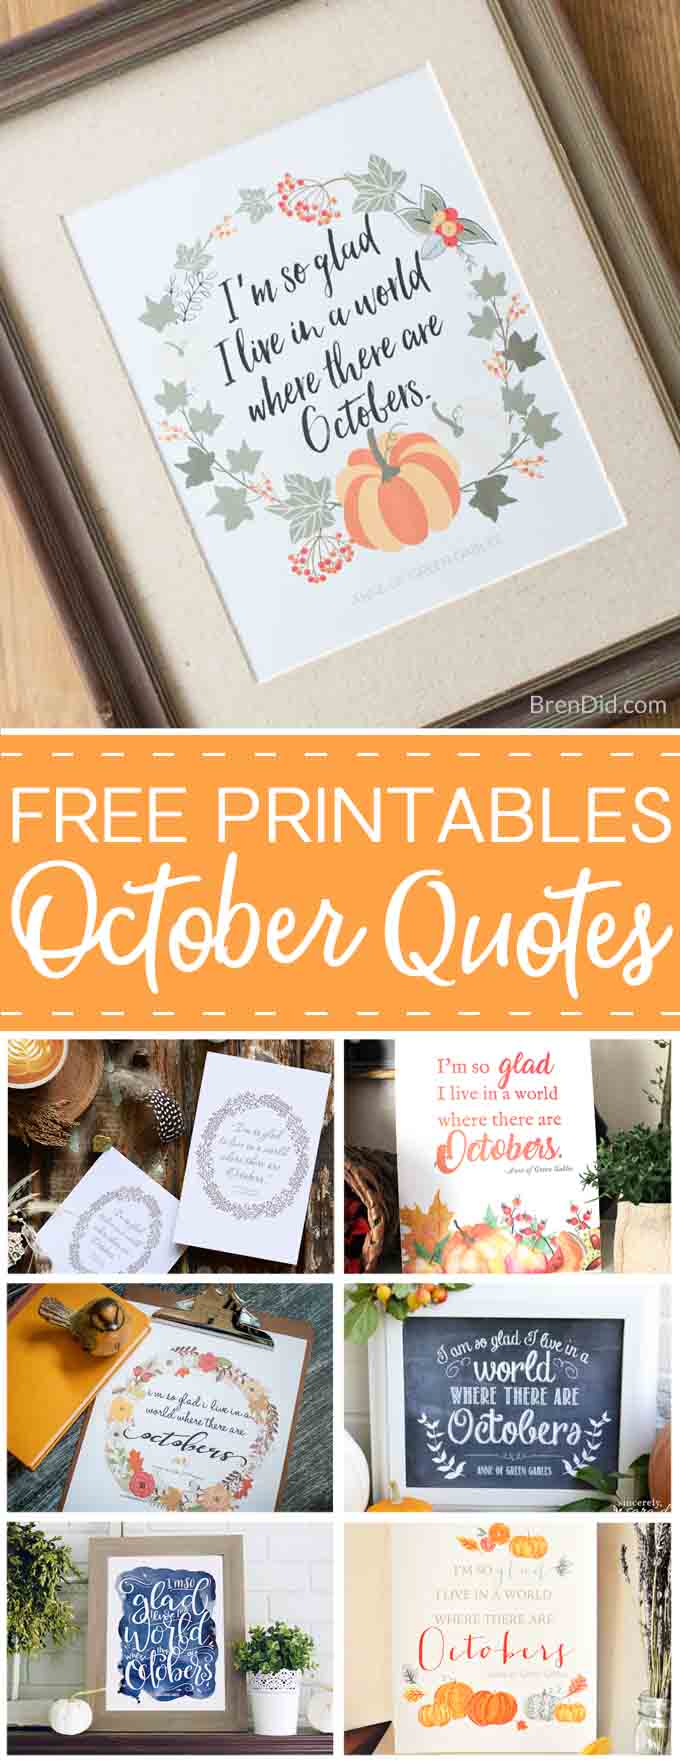 free printable quote I'm so glad I live in a world where there are Octobers Pin